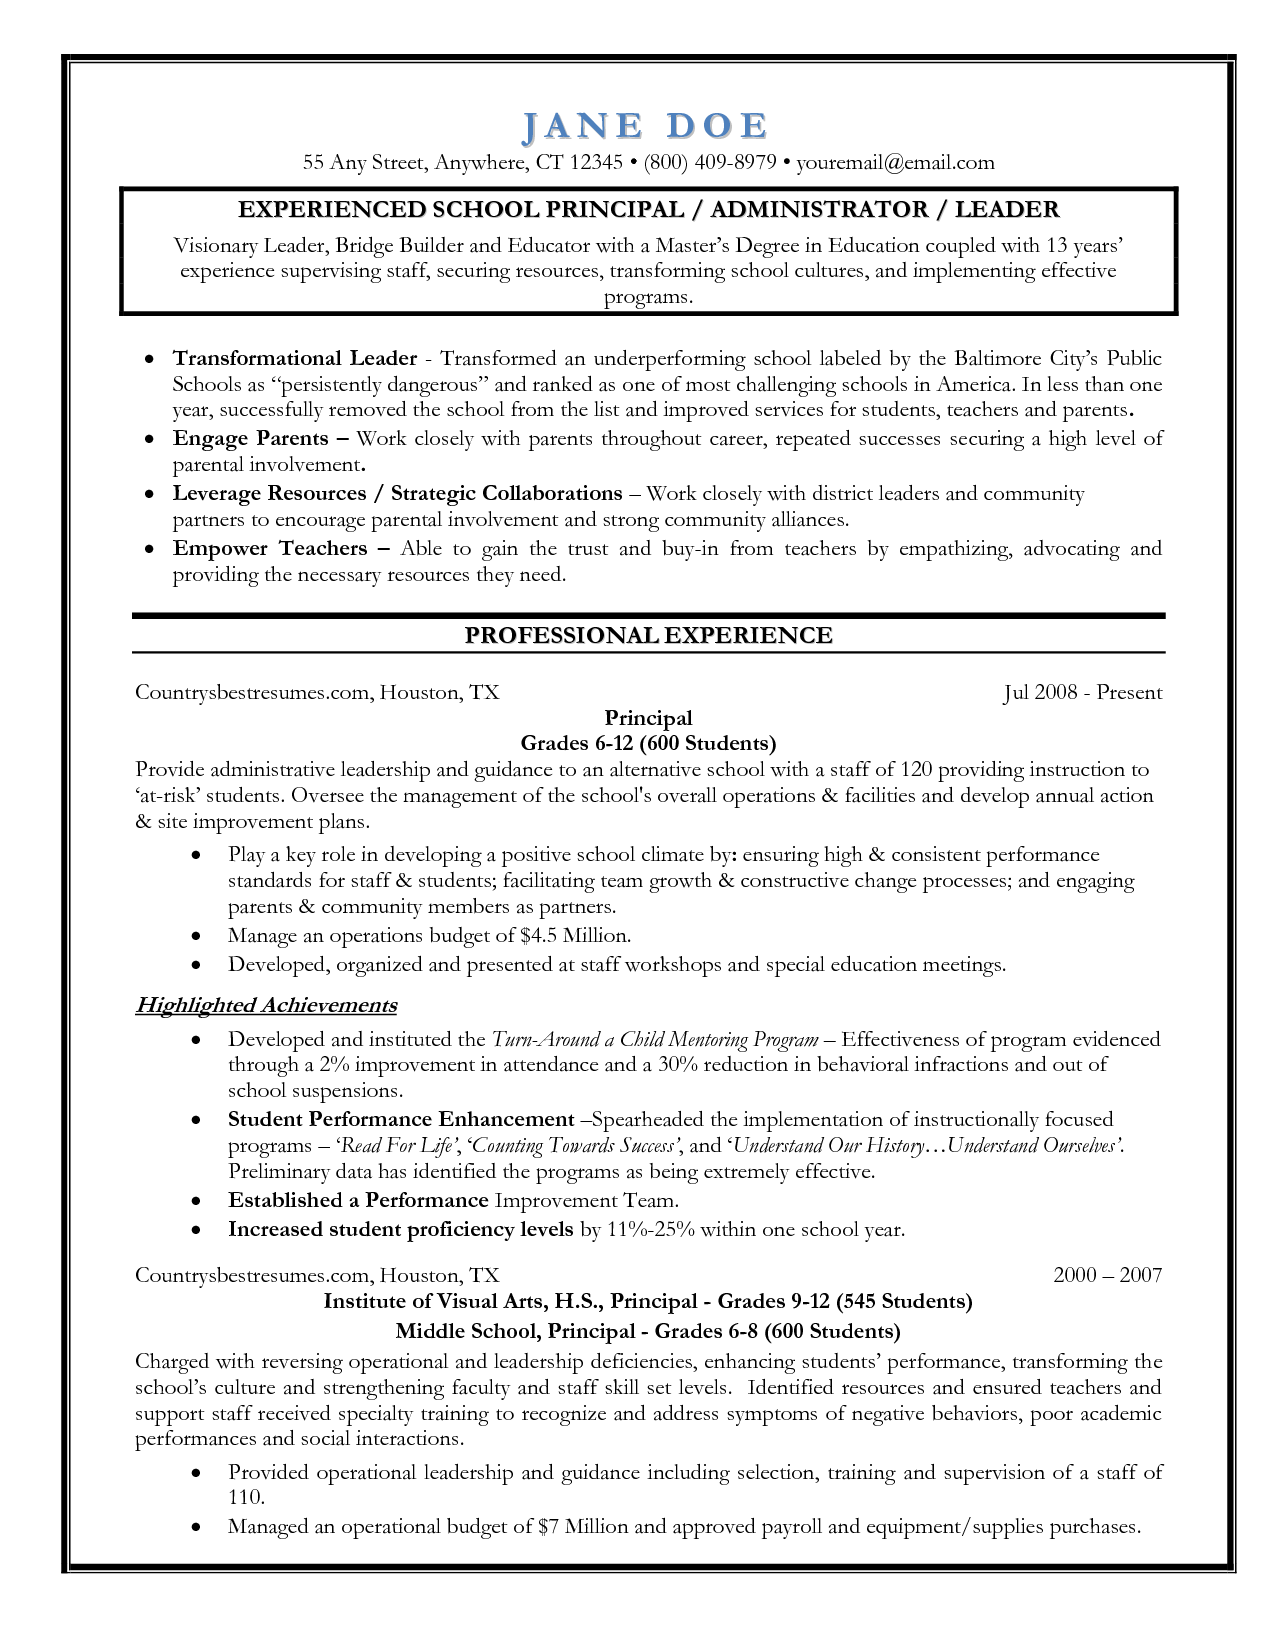 entry-level assistant principal resume templates